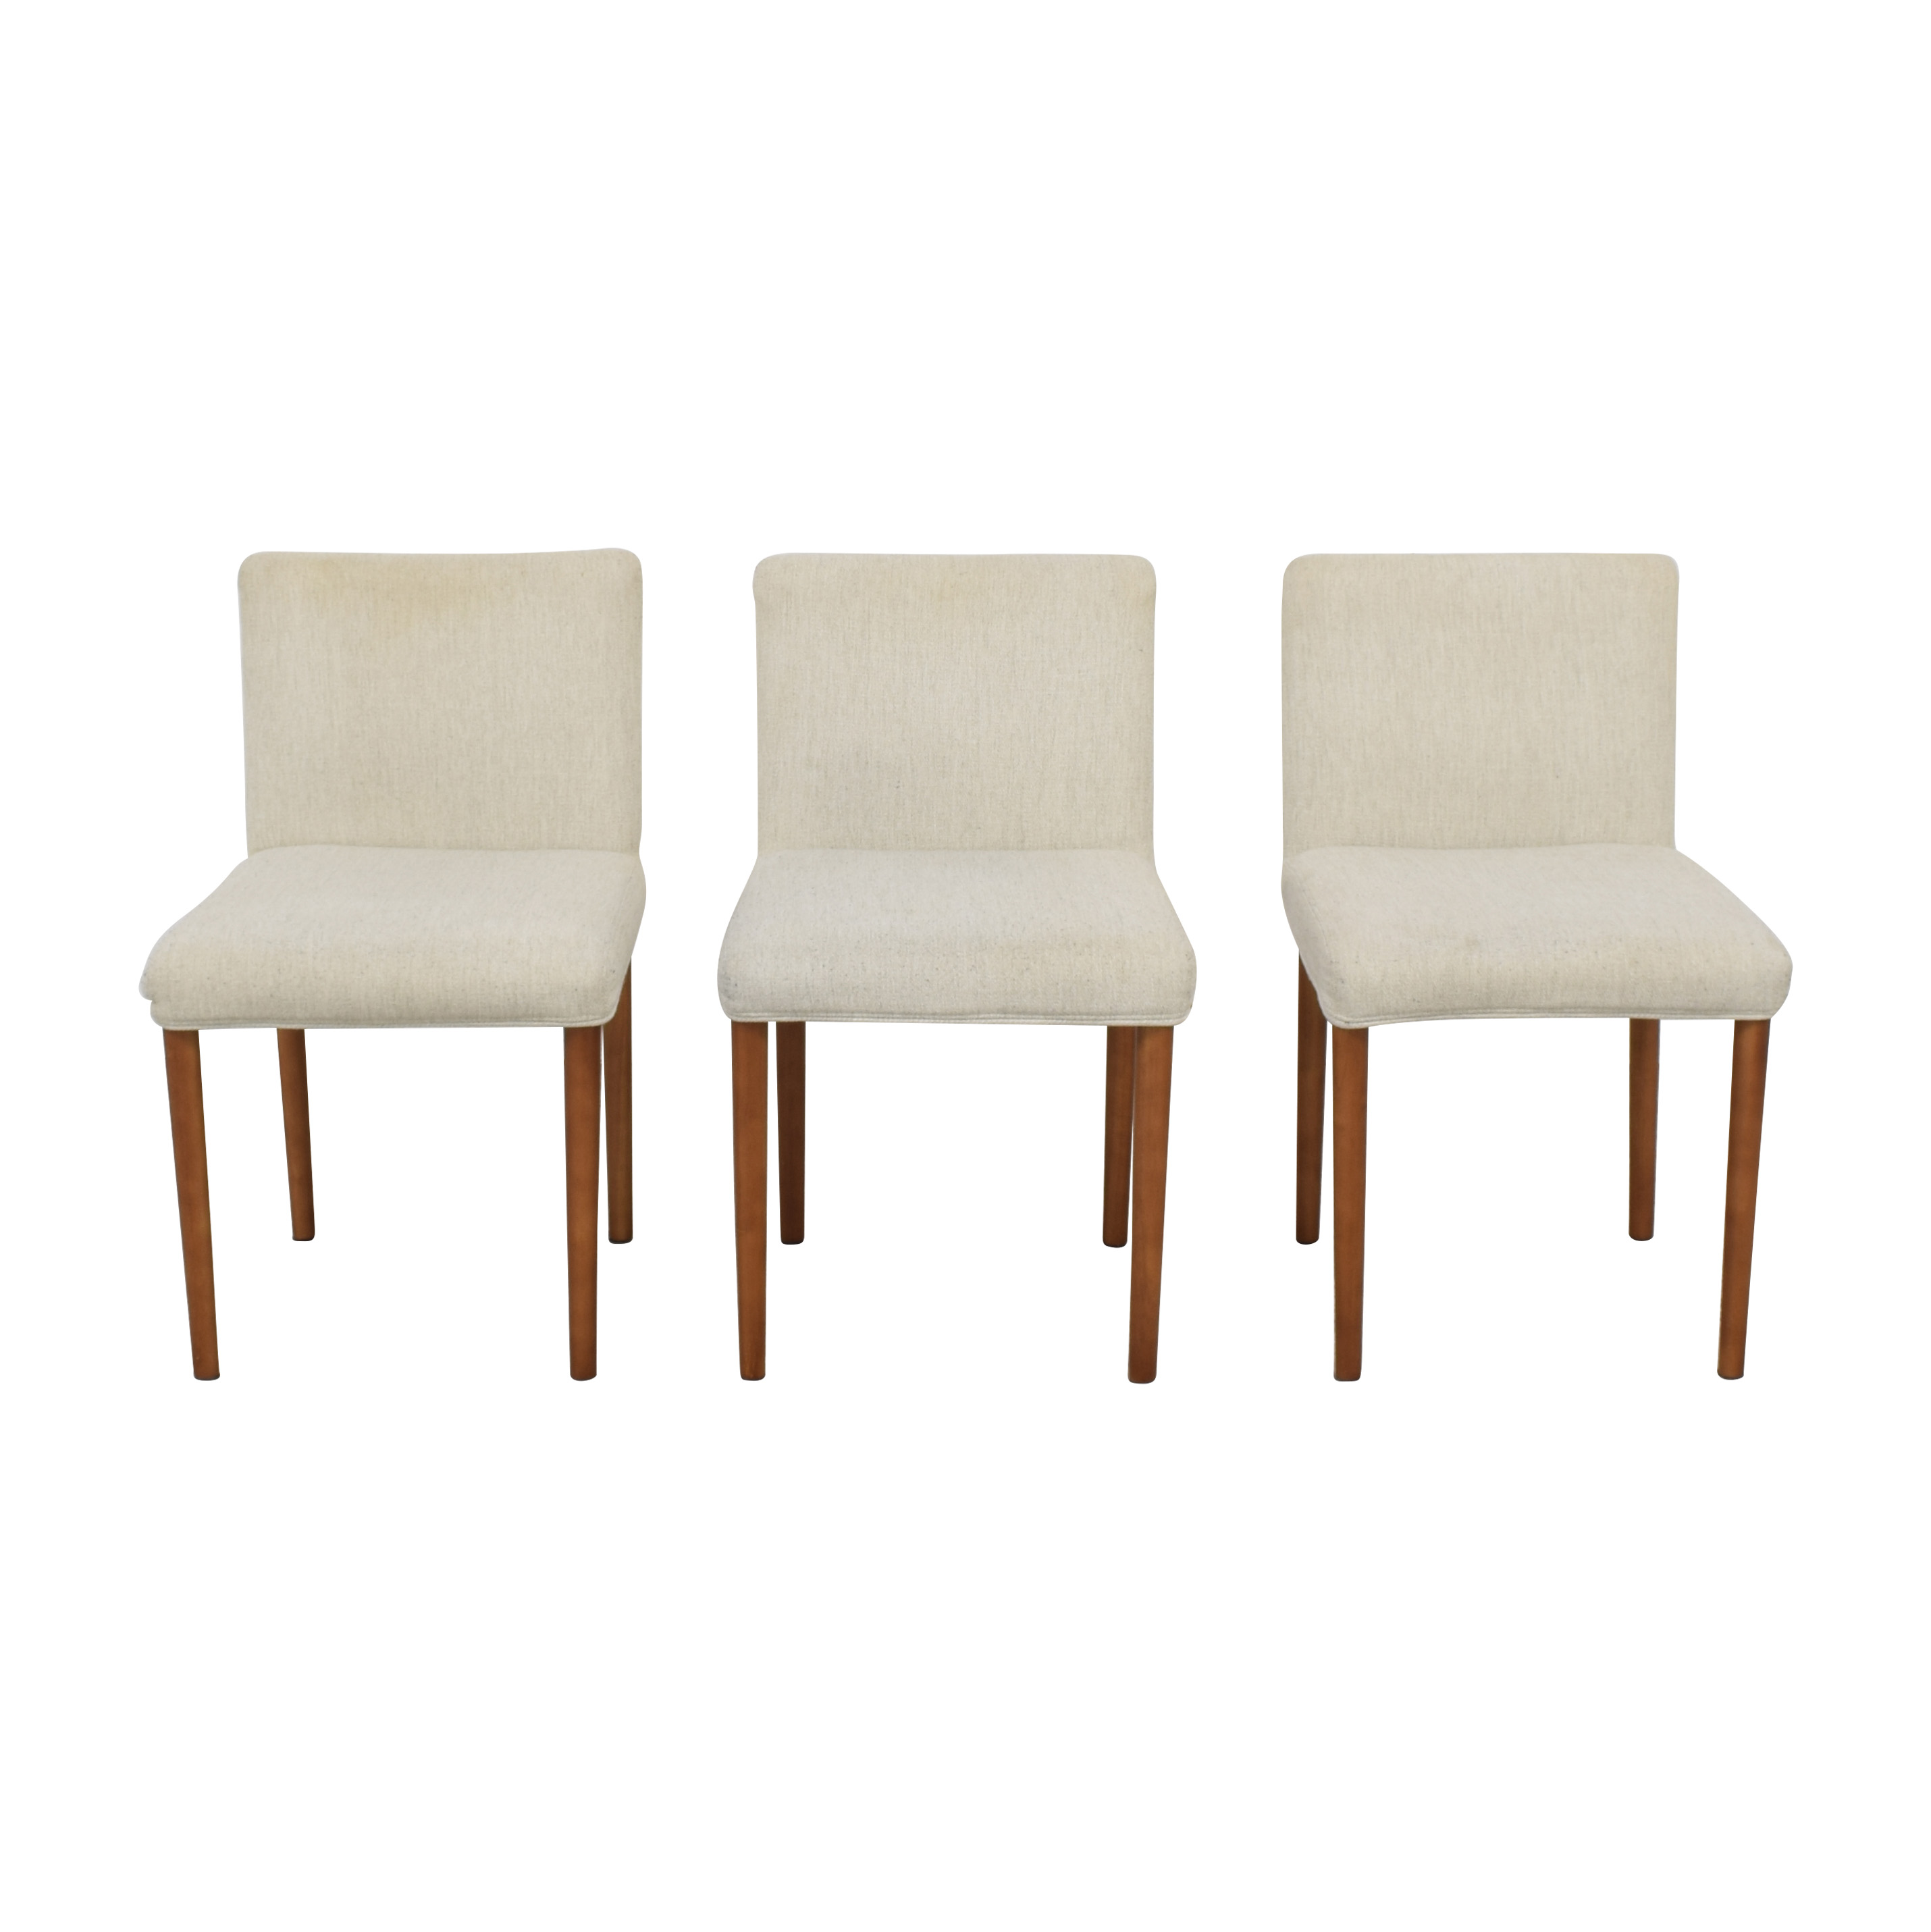 West Elm West Elm Ellis Side Dining Chairs on sale